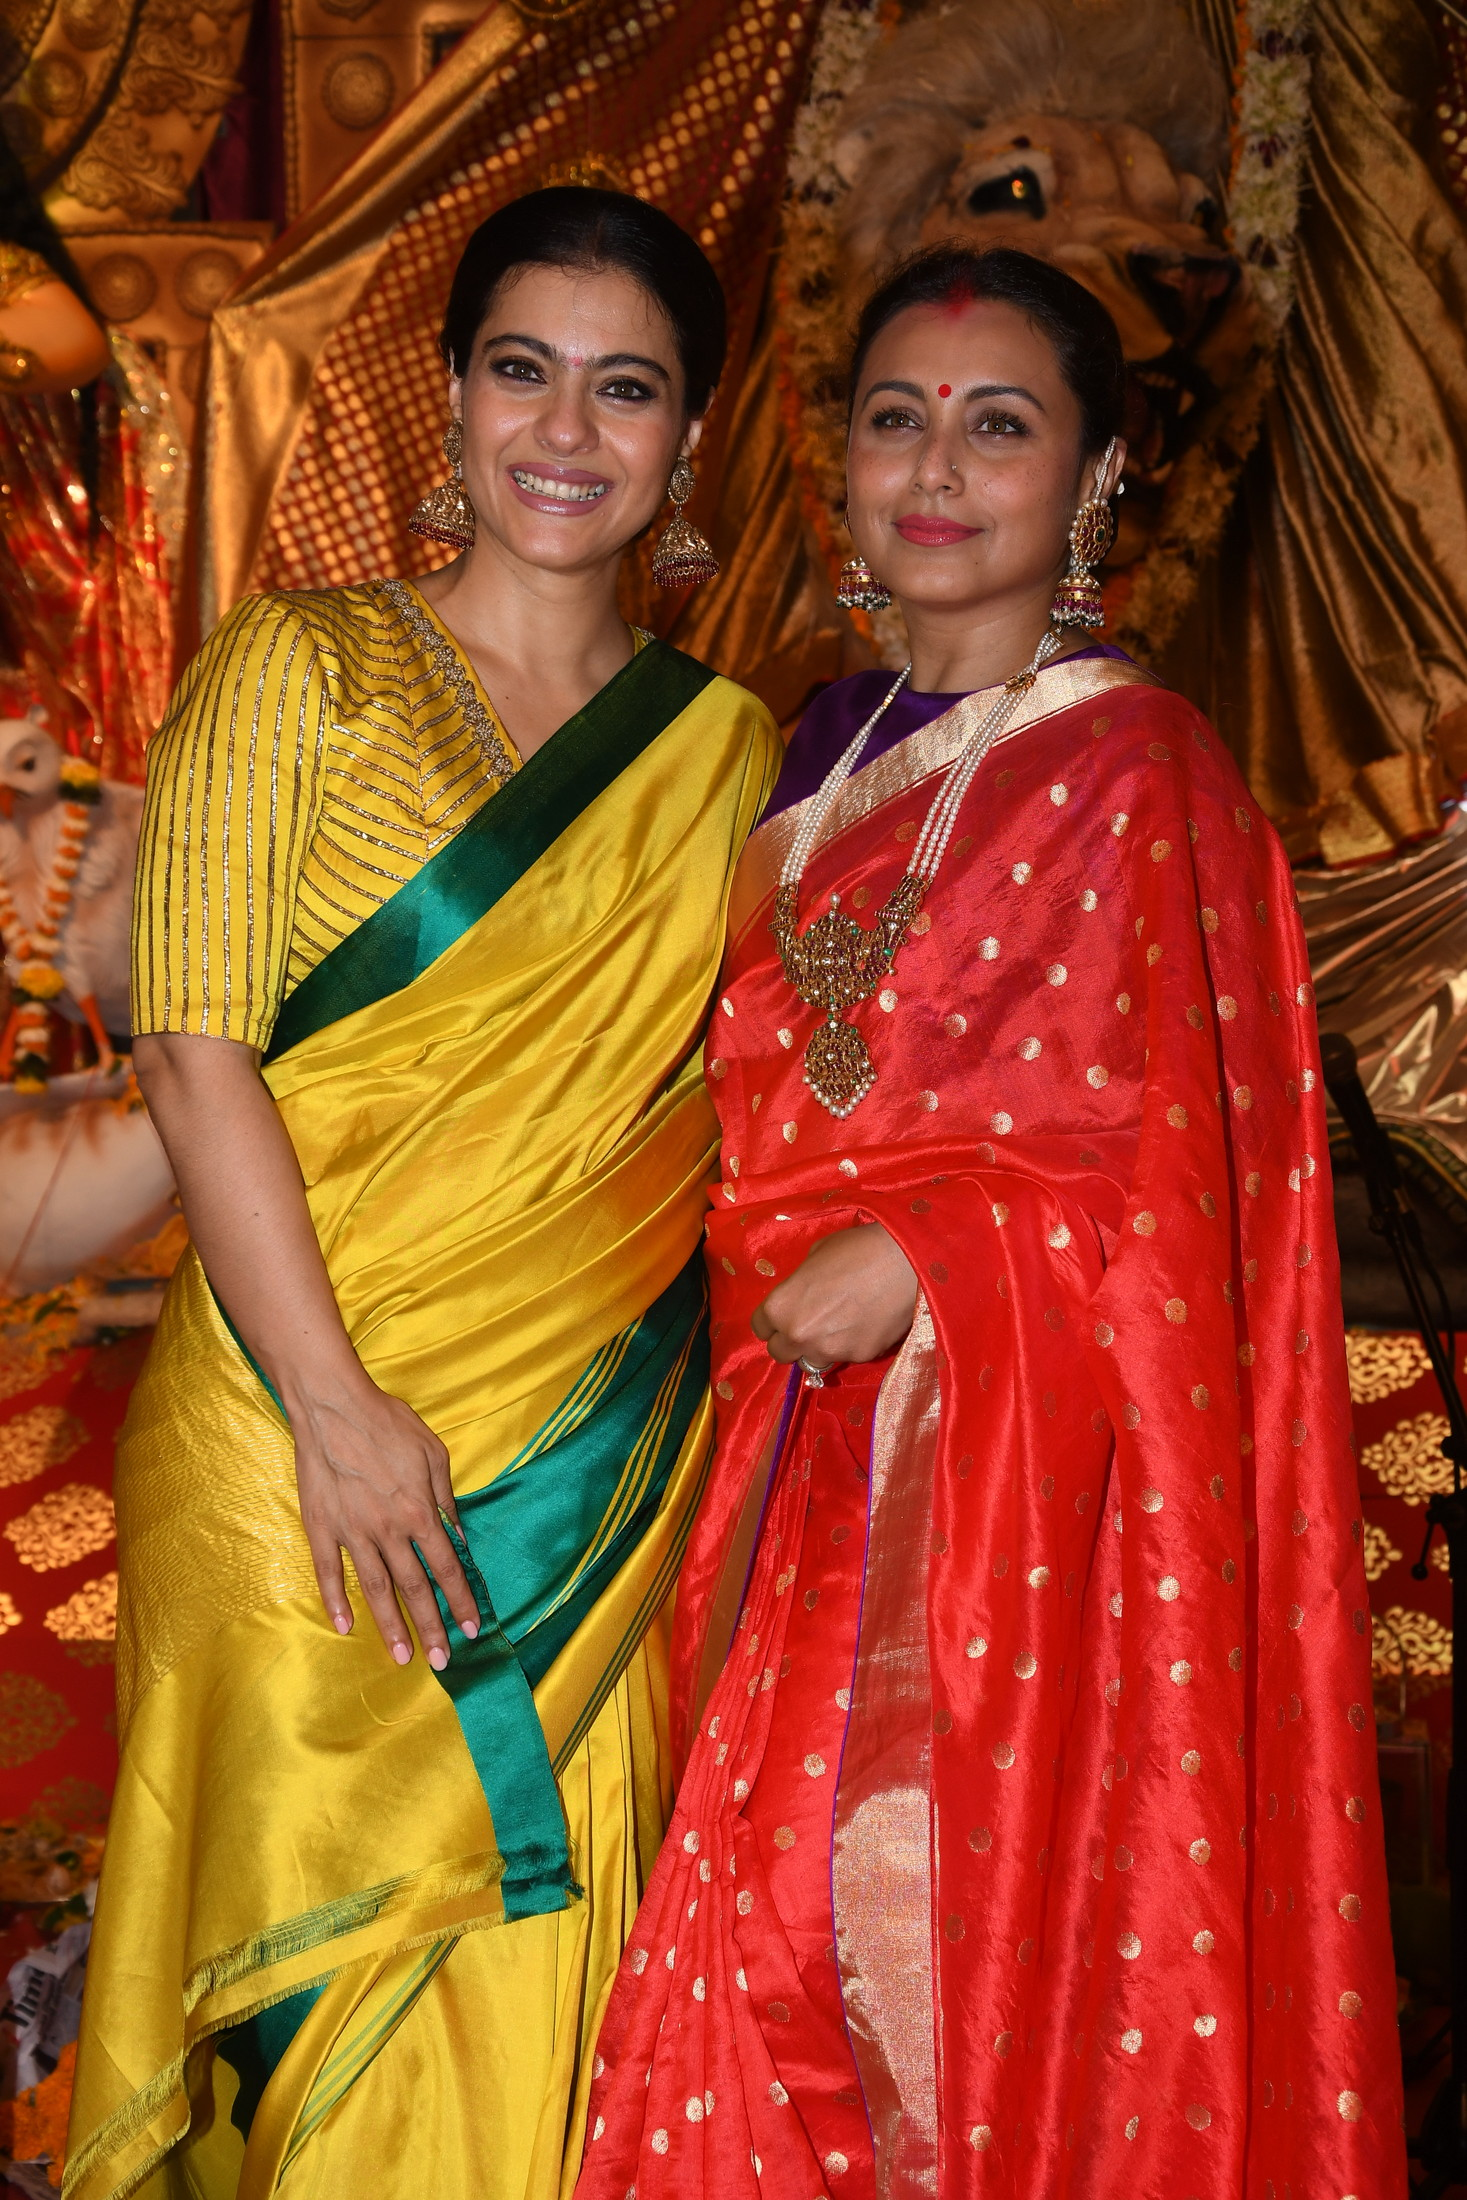 Kajol Devgan with Rani Mukherjee at North Bombay Sarbojanin Durga Puja Samiti's DURGA PUJA -Photo By Sachin Murdeshwar / GPN